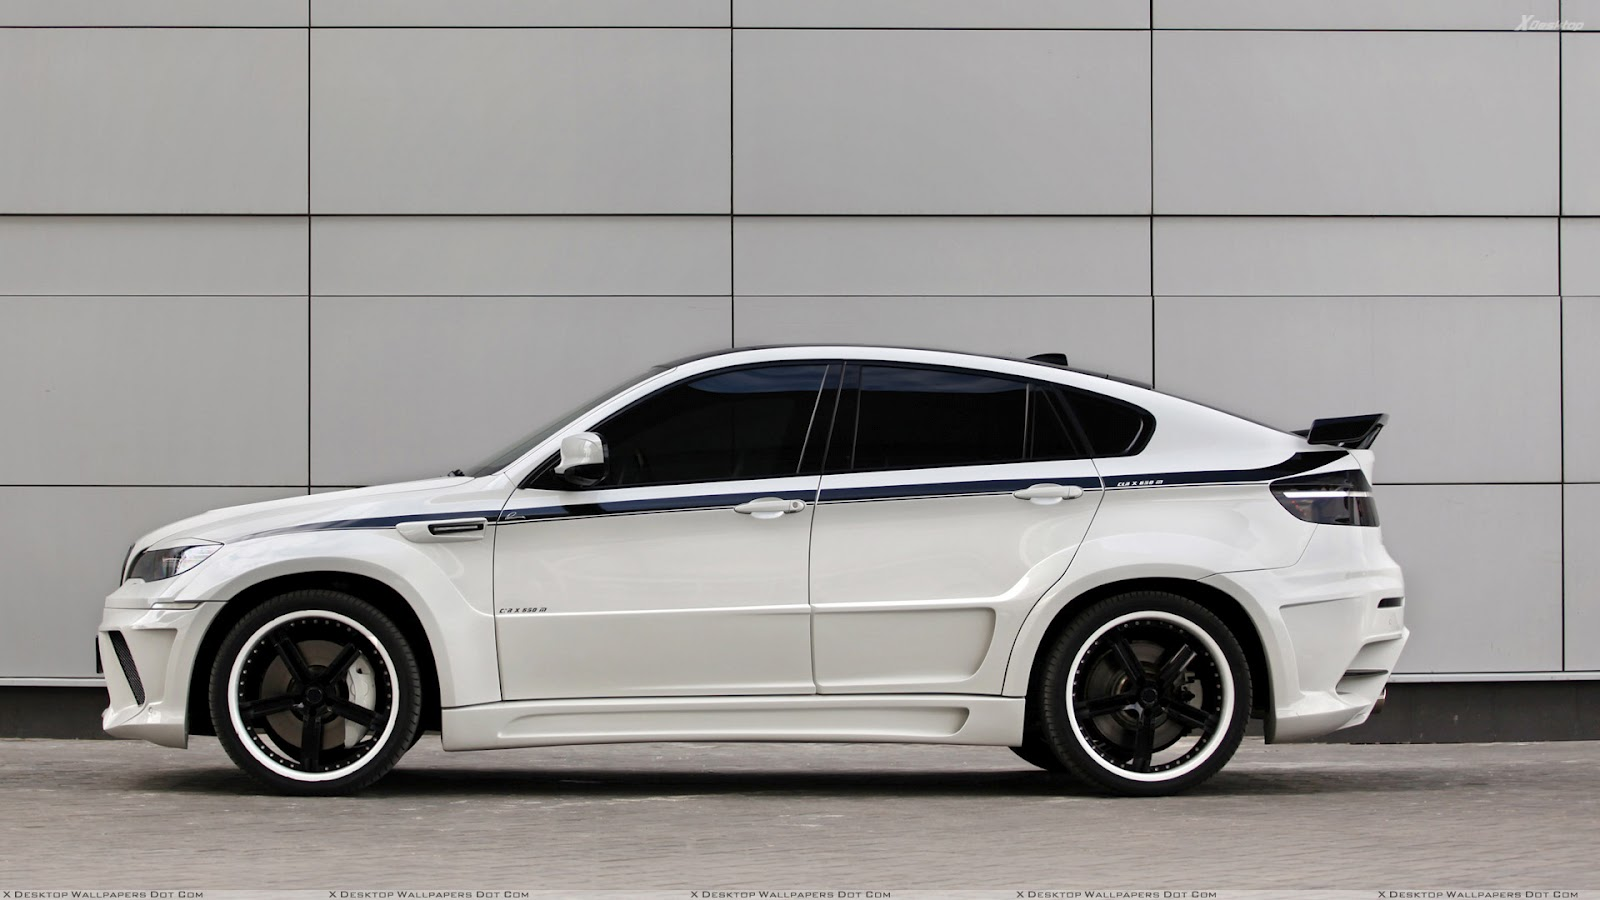 2012 Bmw X6 Review Specs Price The List Of Cars